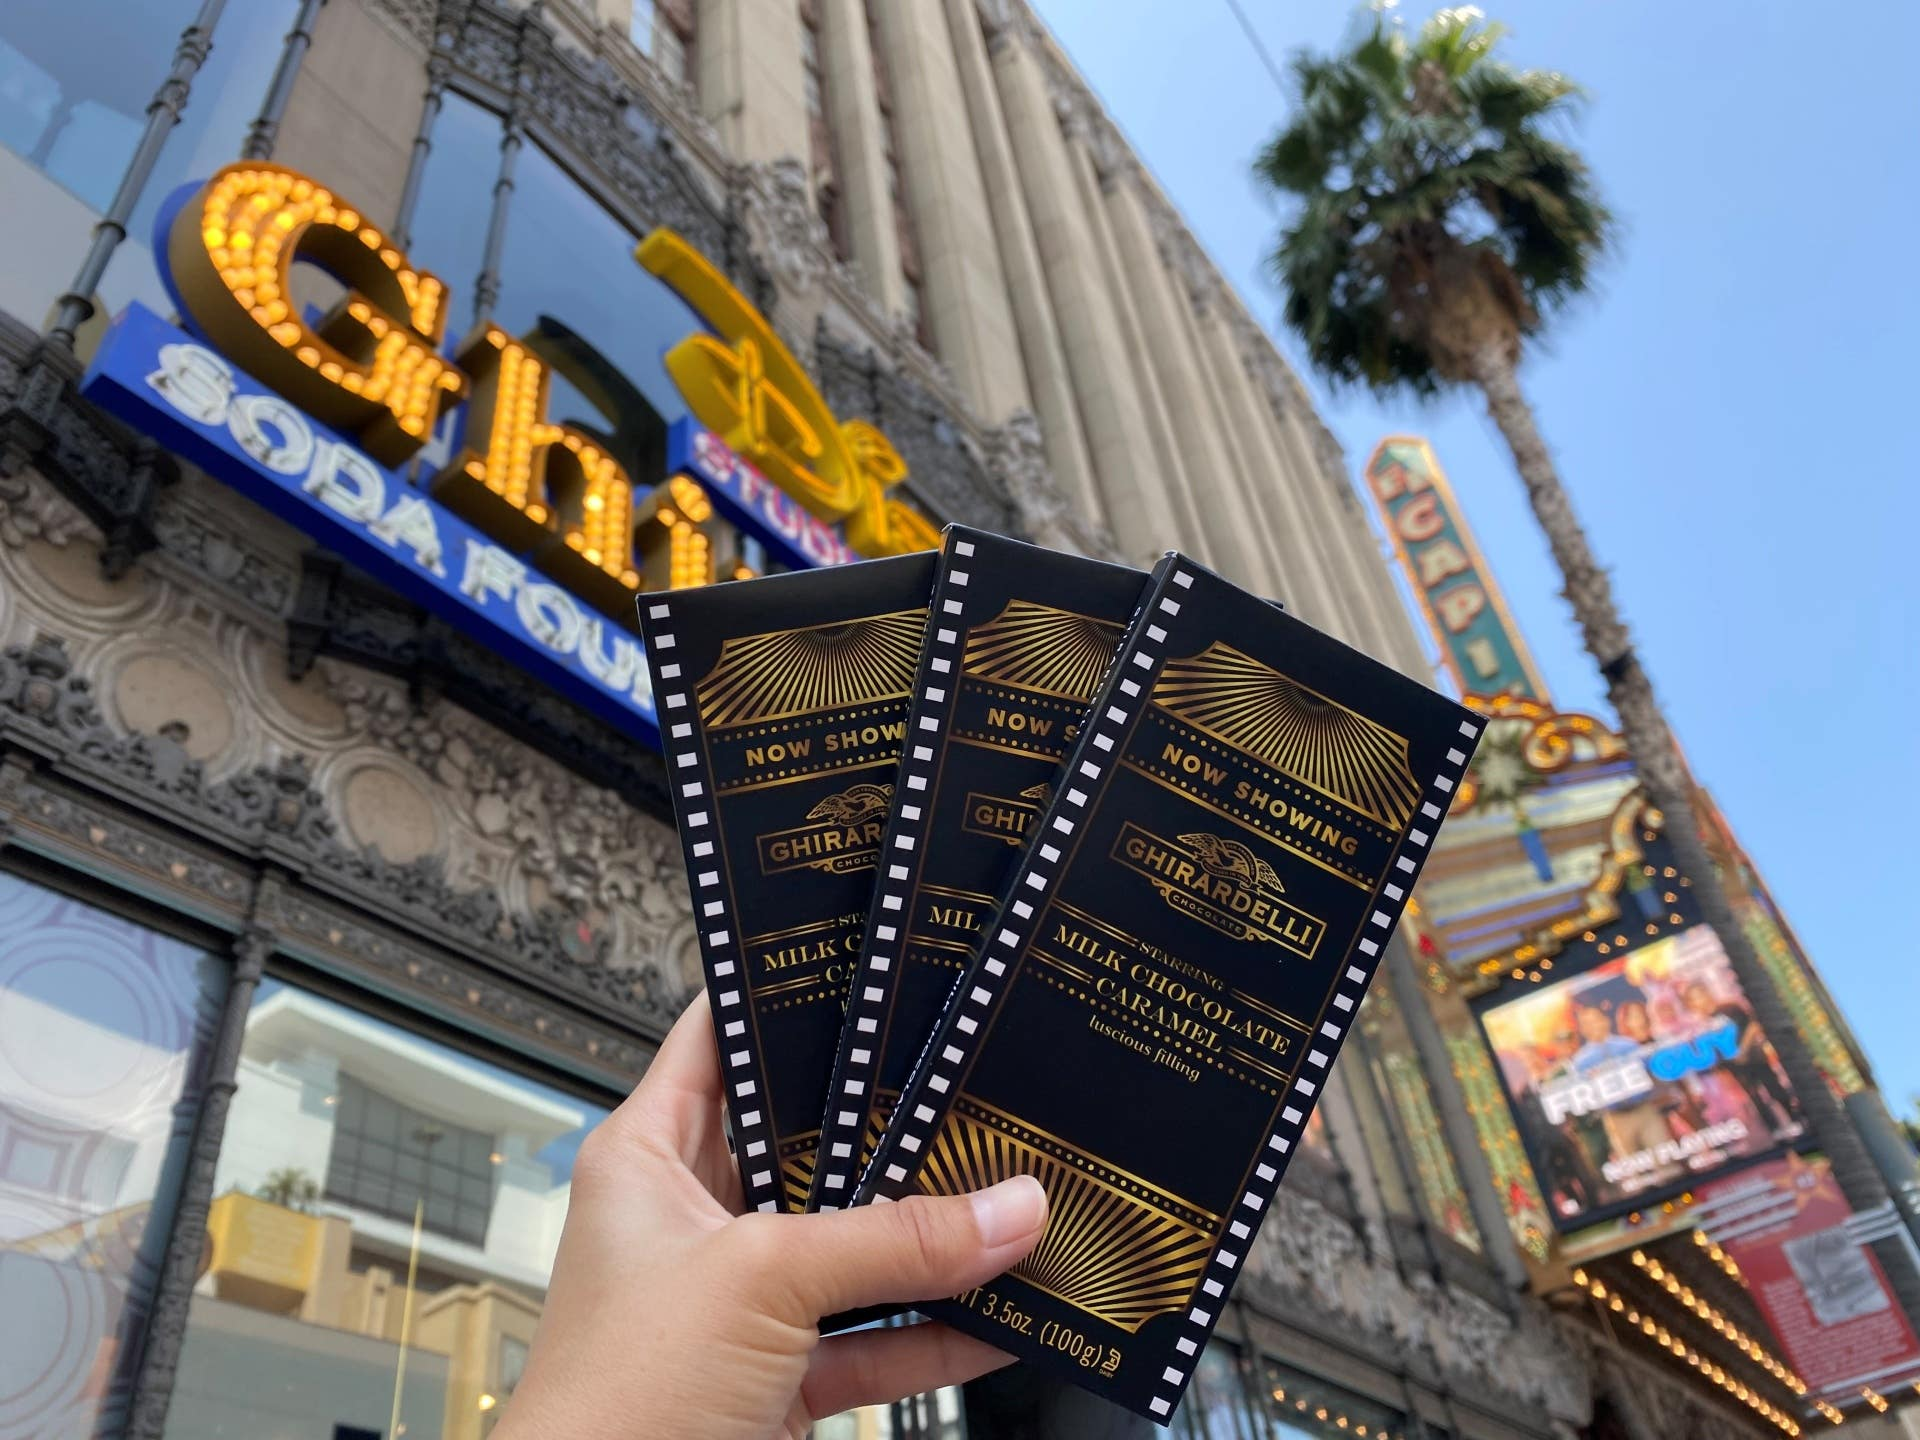 Hollywood Chocolate Bars outside of Ghirardelli Soda Fountain & Chocolate Shop in Hollywood